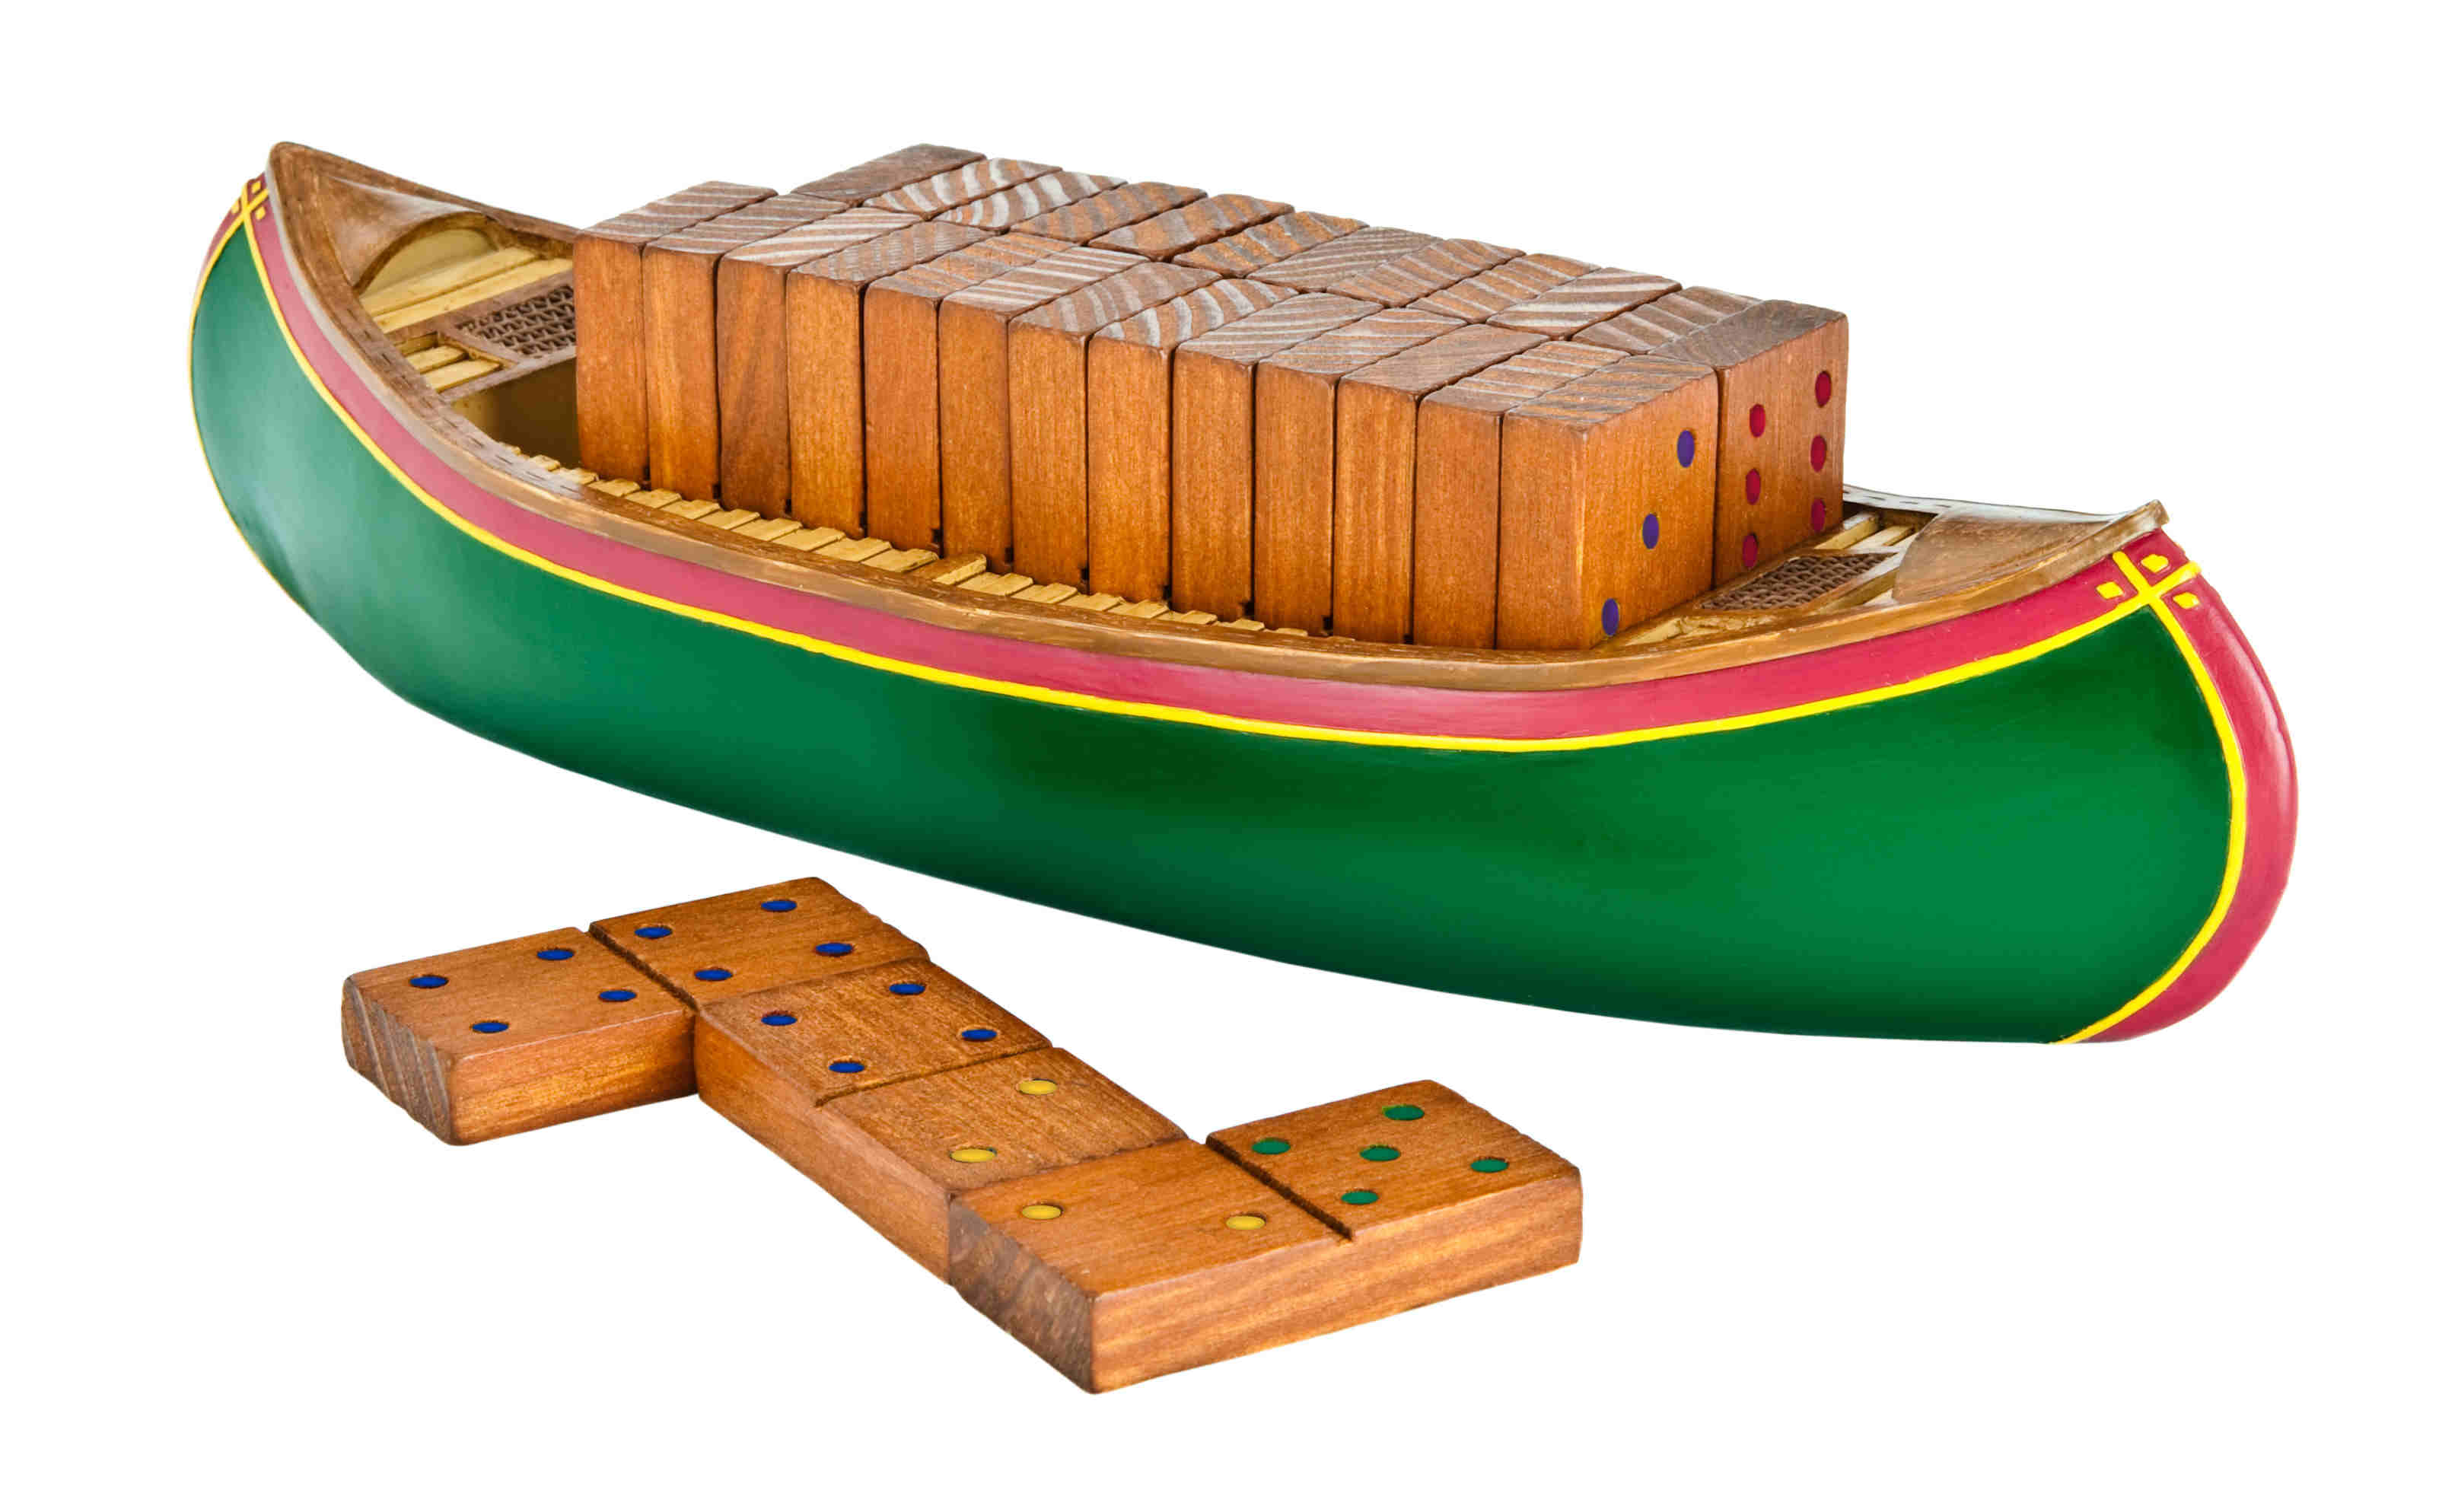 Gsi Outdoors Canoe Dominoes